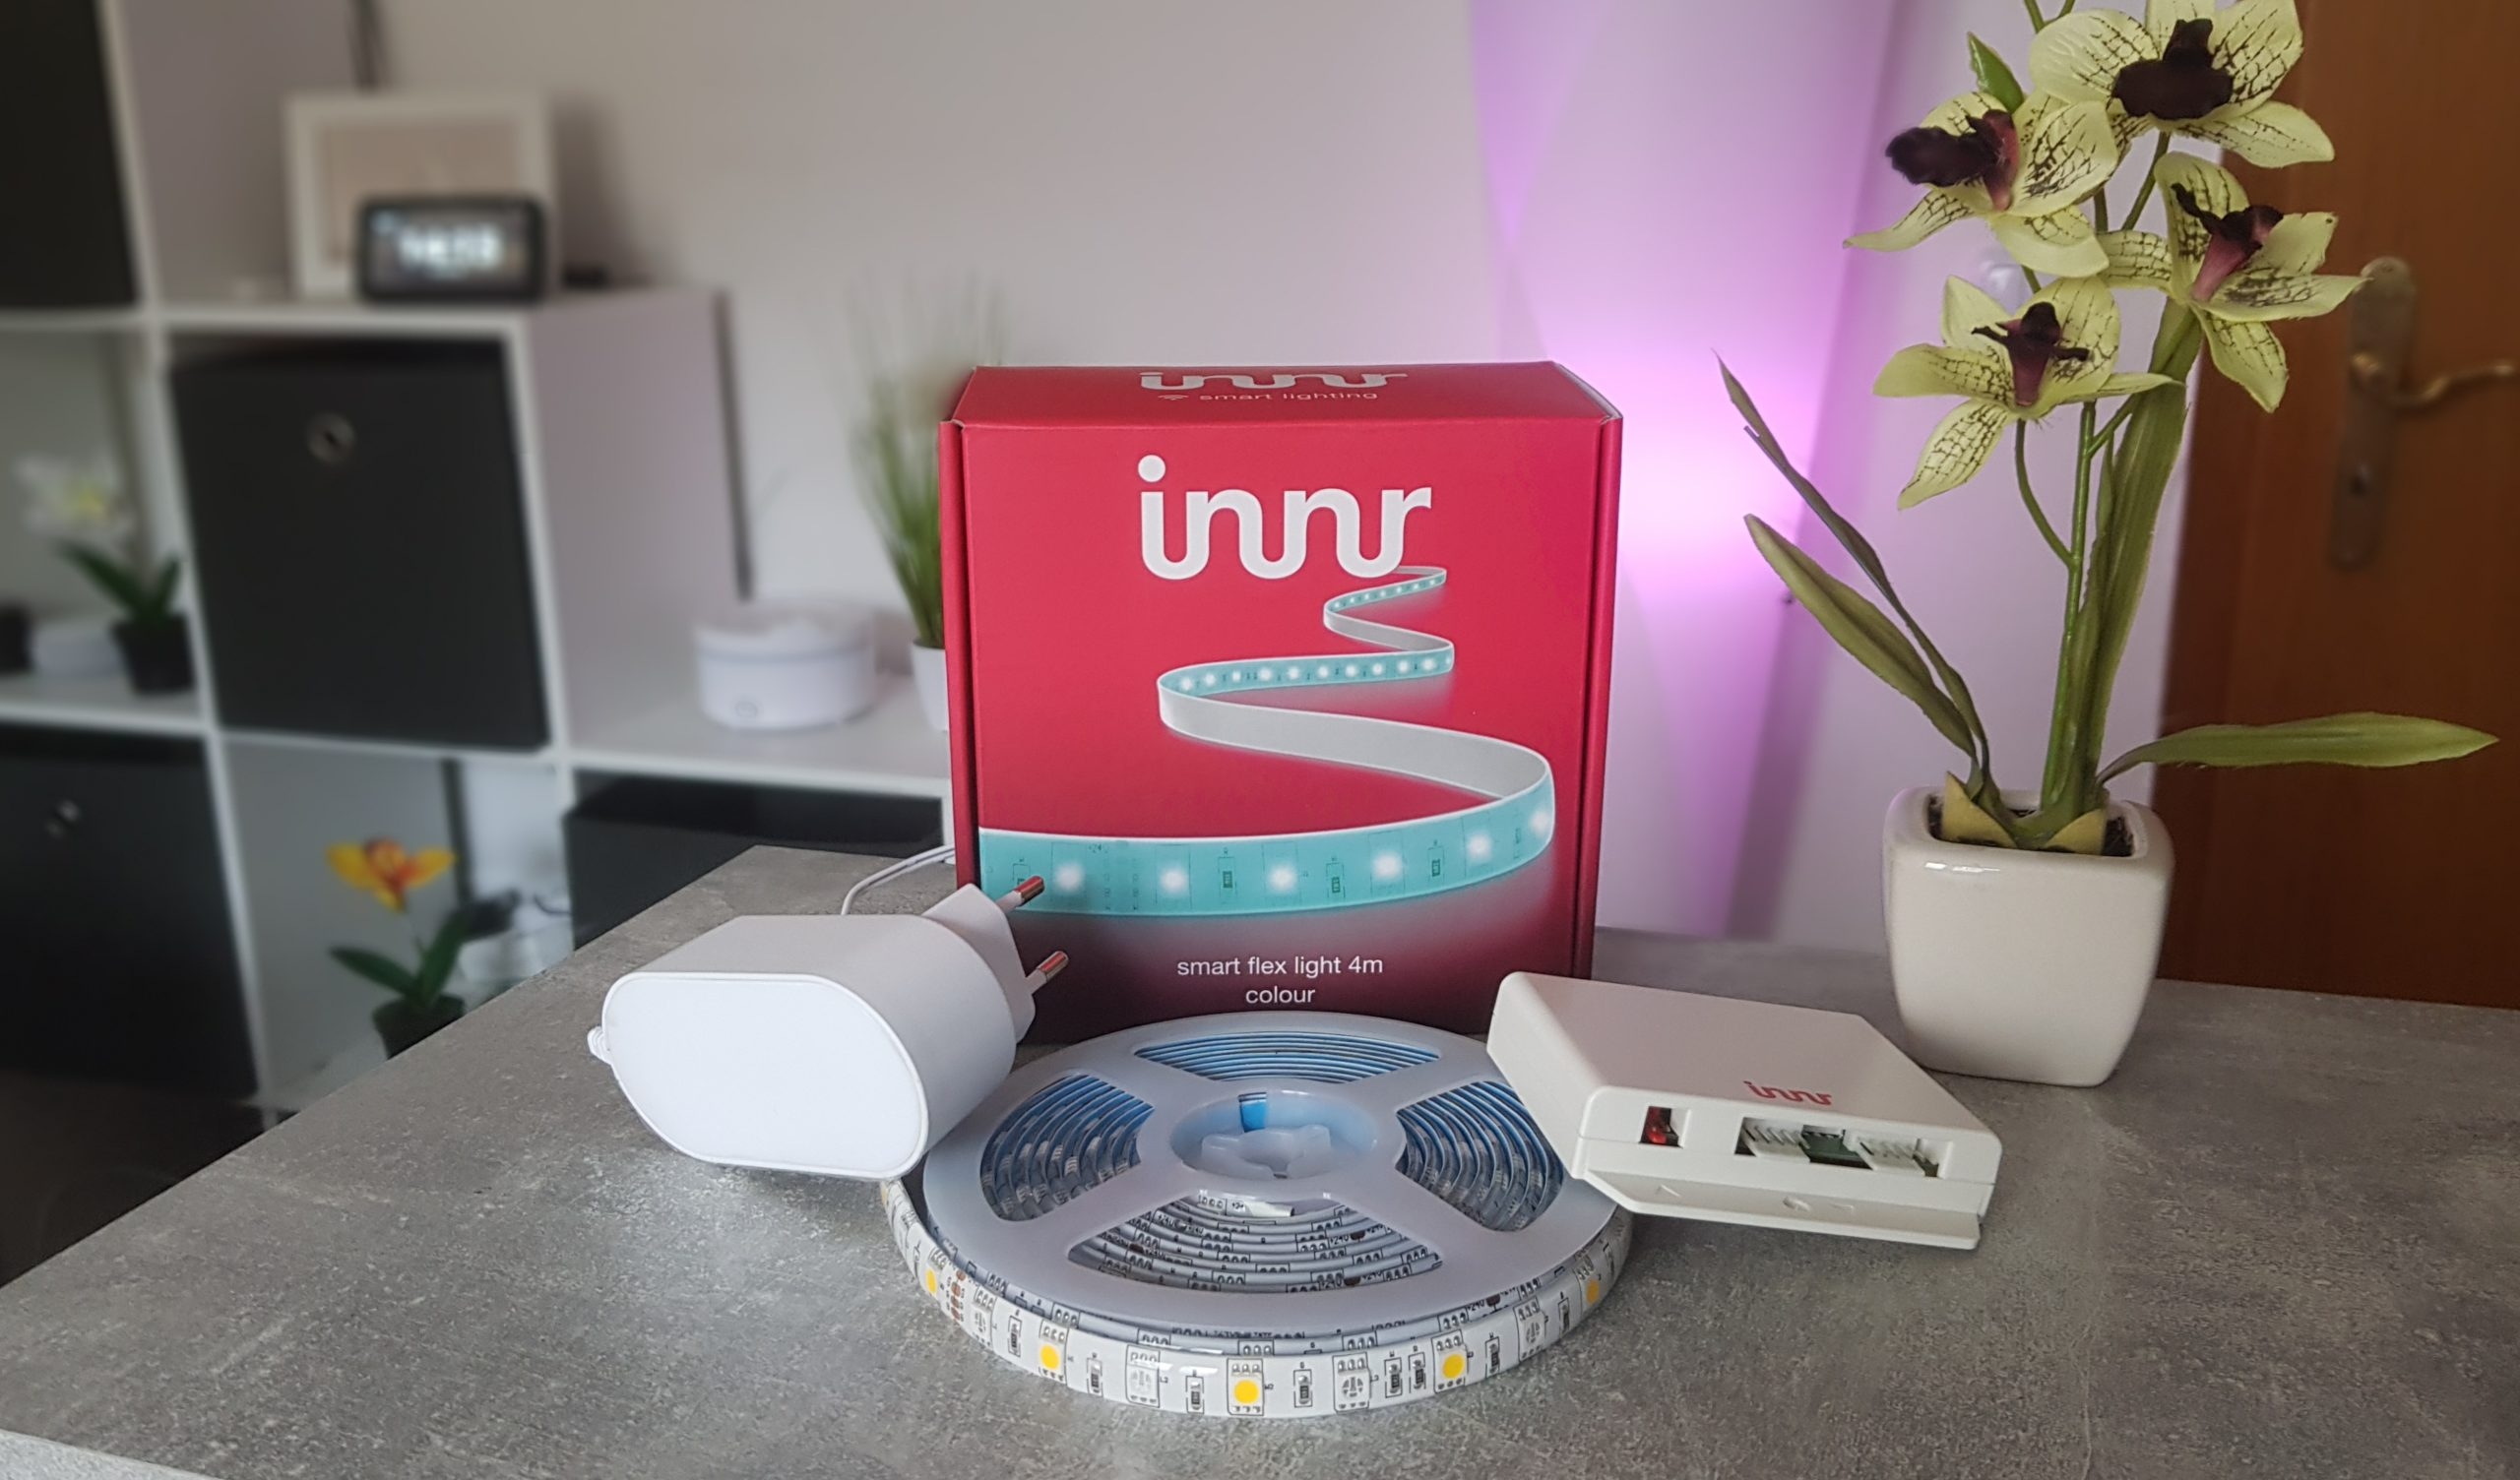 INNR Smart Flex Light 4m